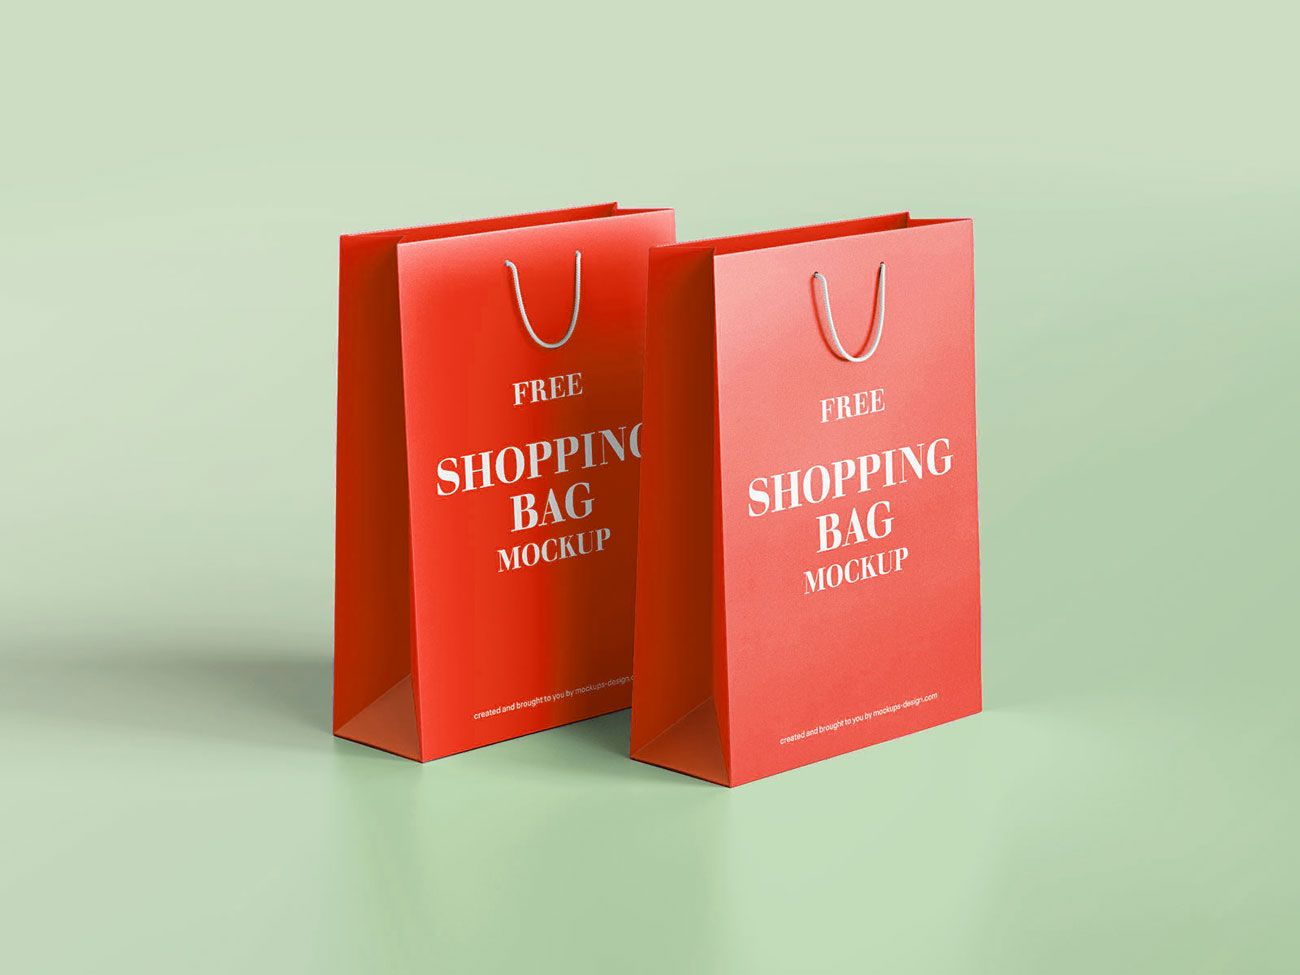 Download Free Thick Matte Finish Rich Quality Paper Shopping Bag Mockup In 2020 Bag Mockup Free Packaging Mockup Paper Shopping Bag